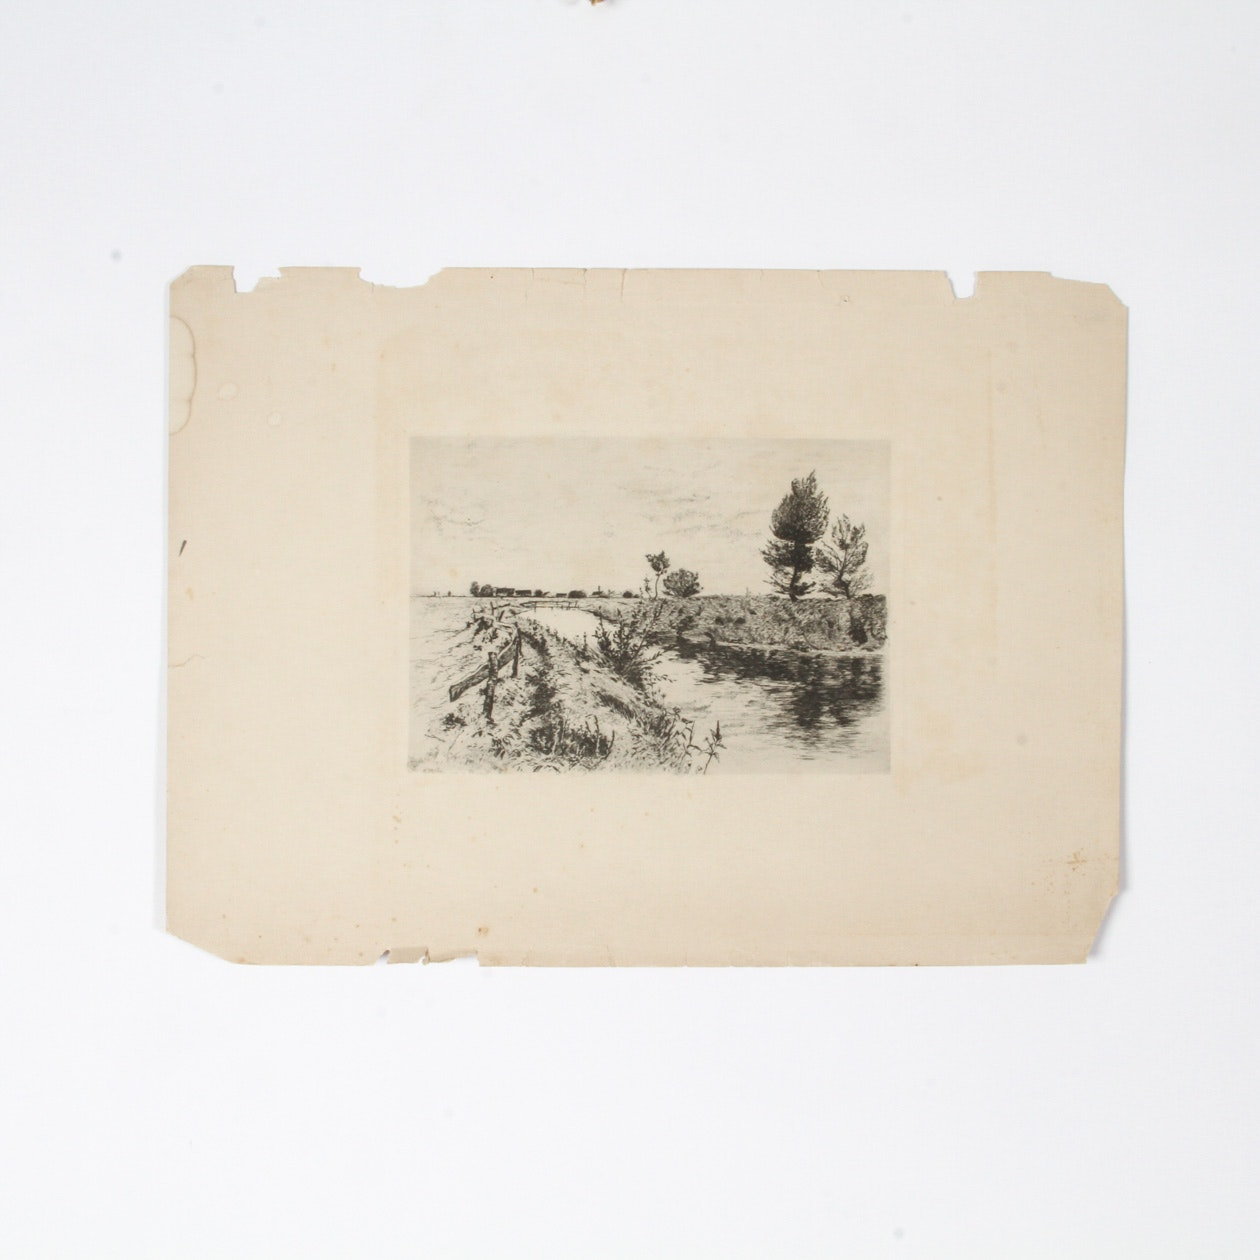 Drypoint Etching on Paper